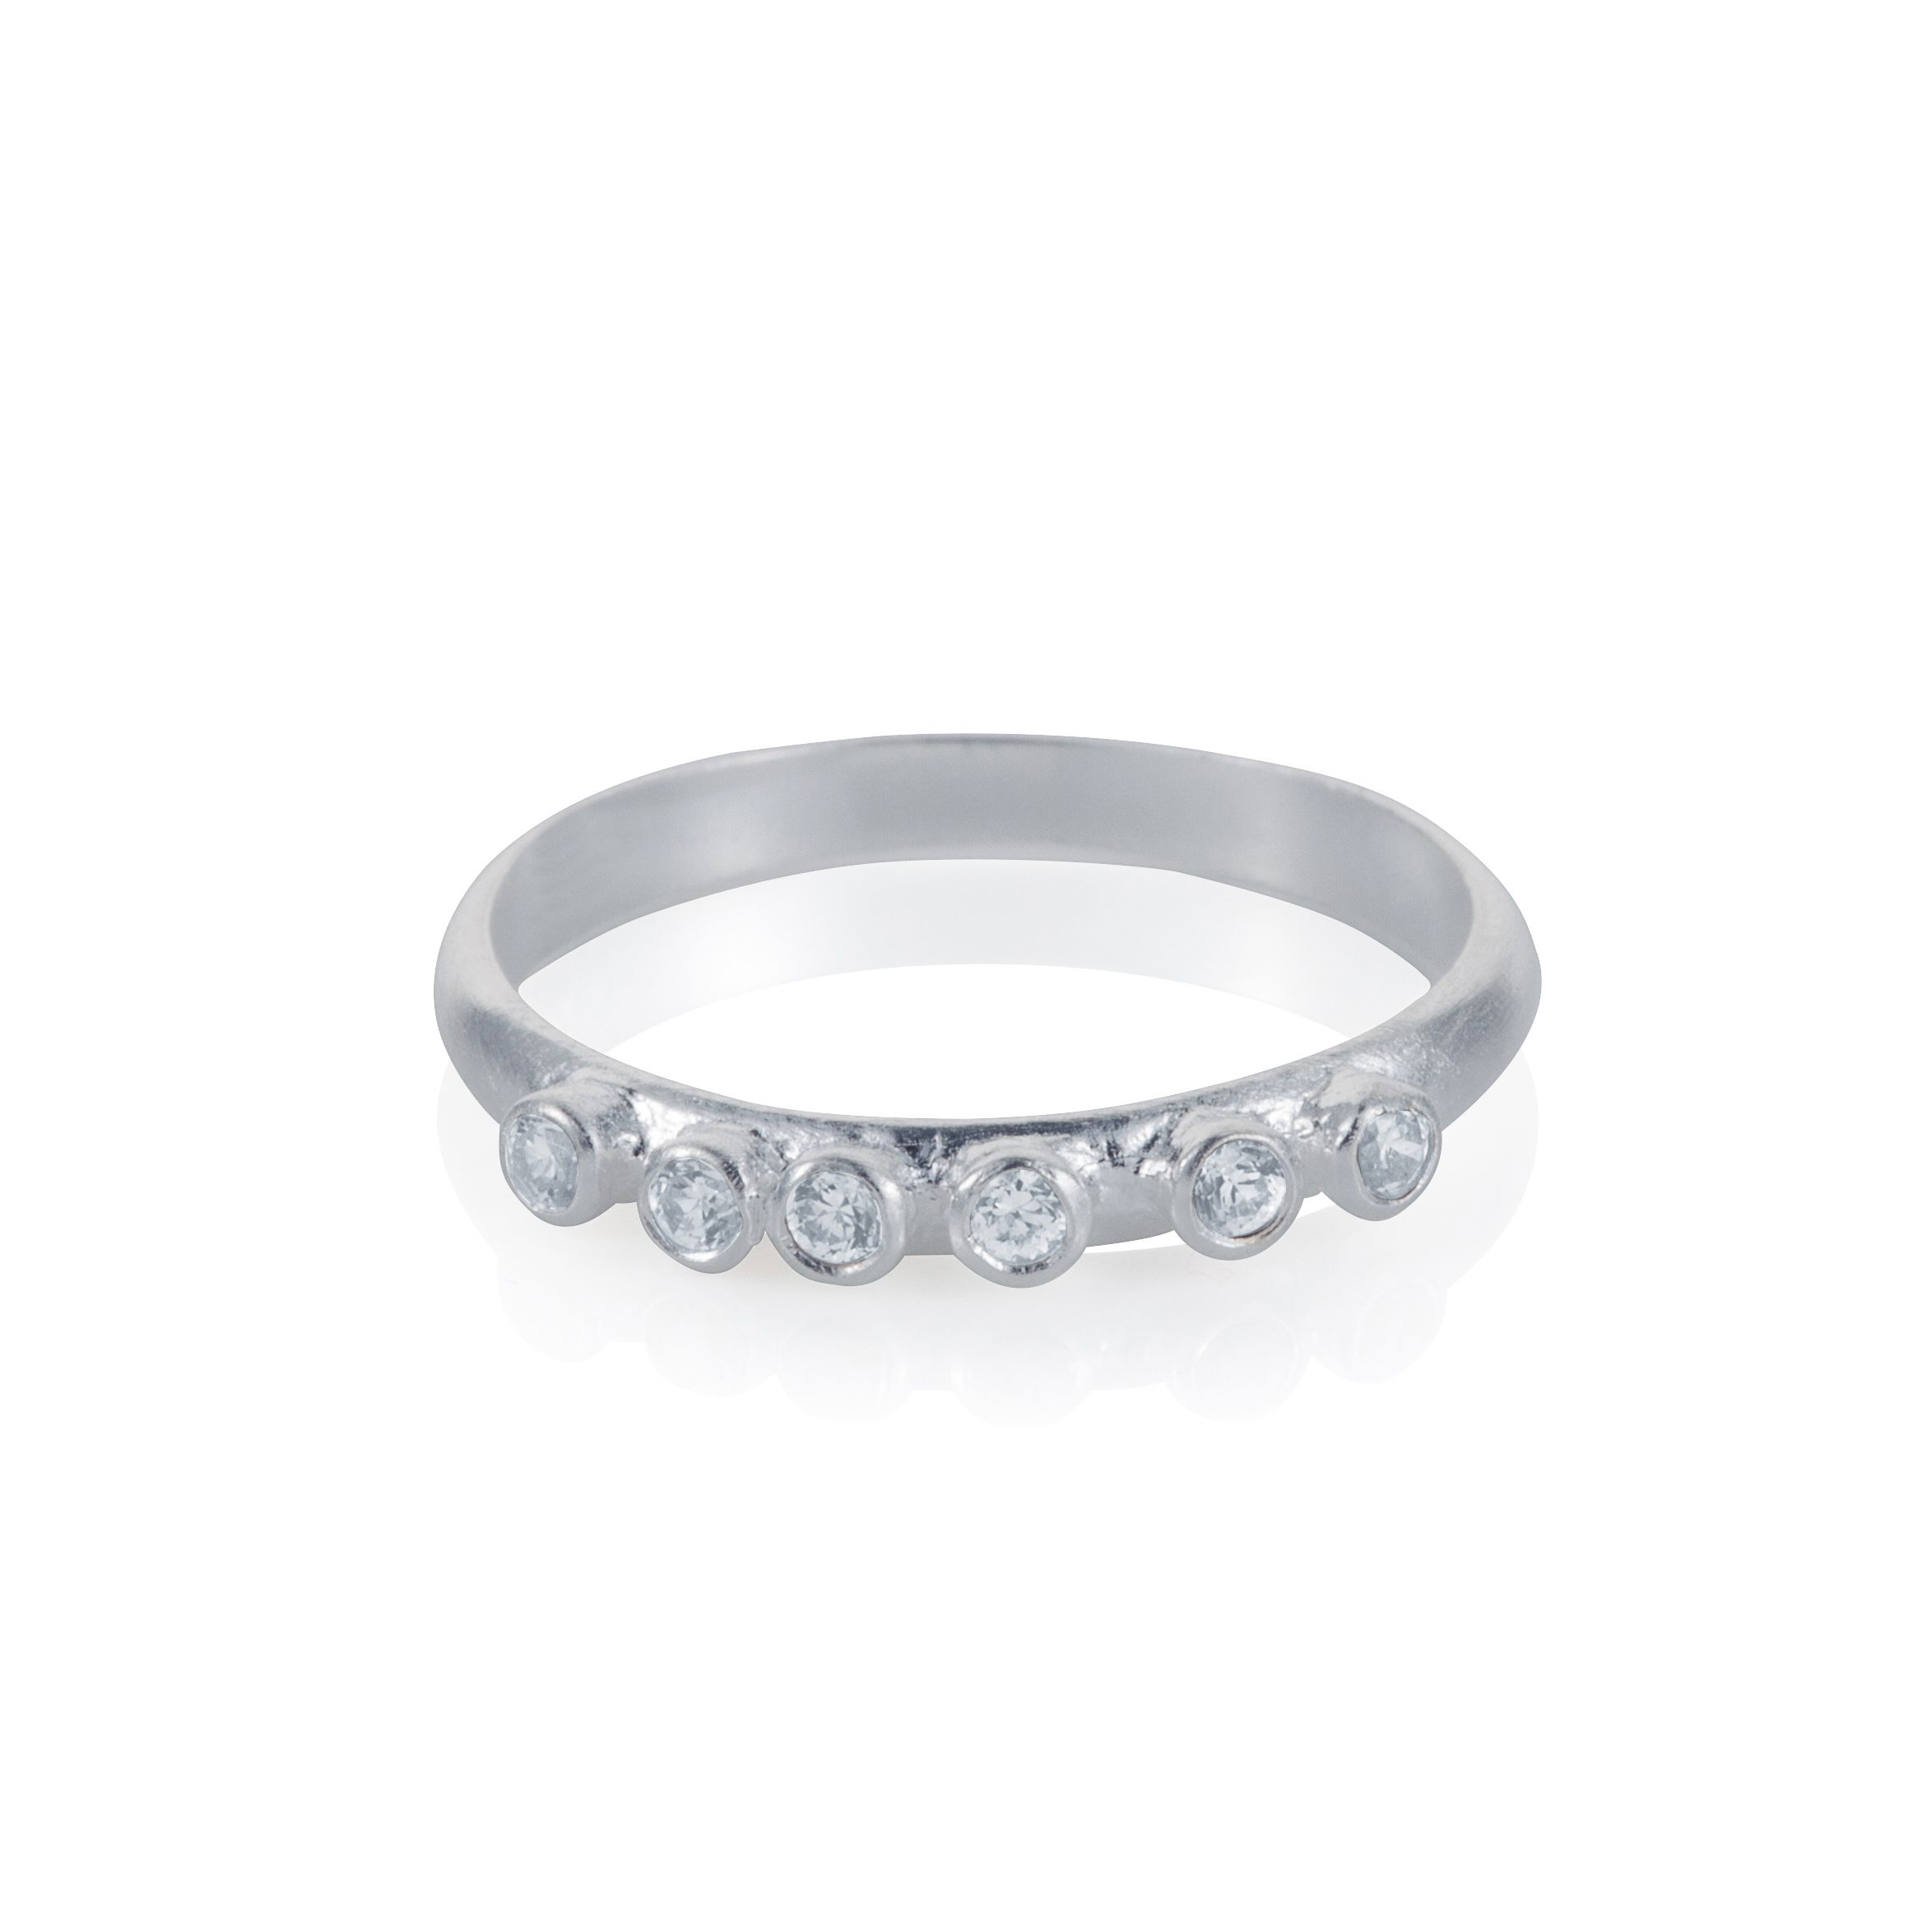 Sterling silver six stone stacker ring